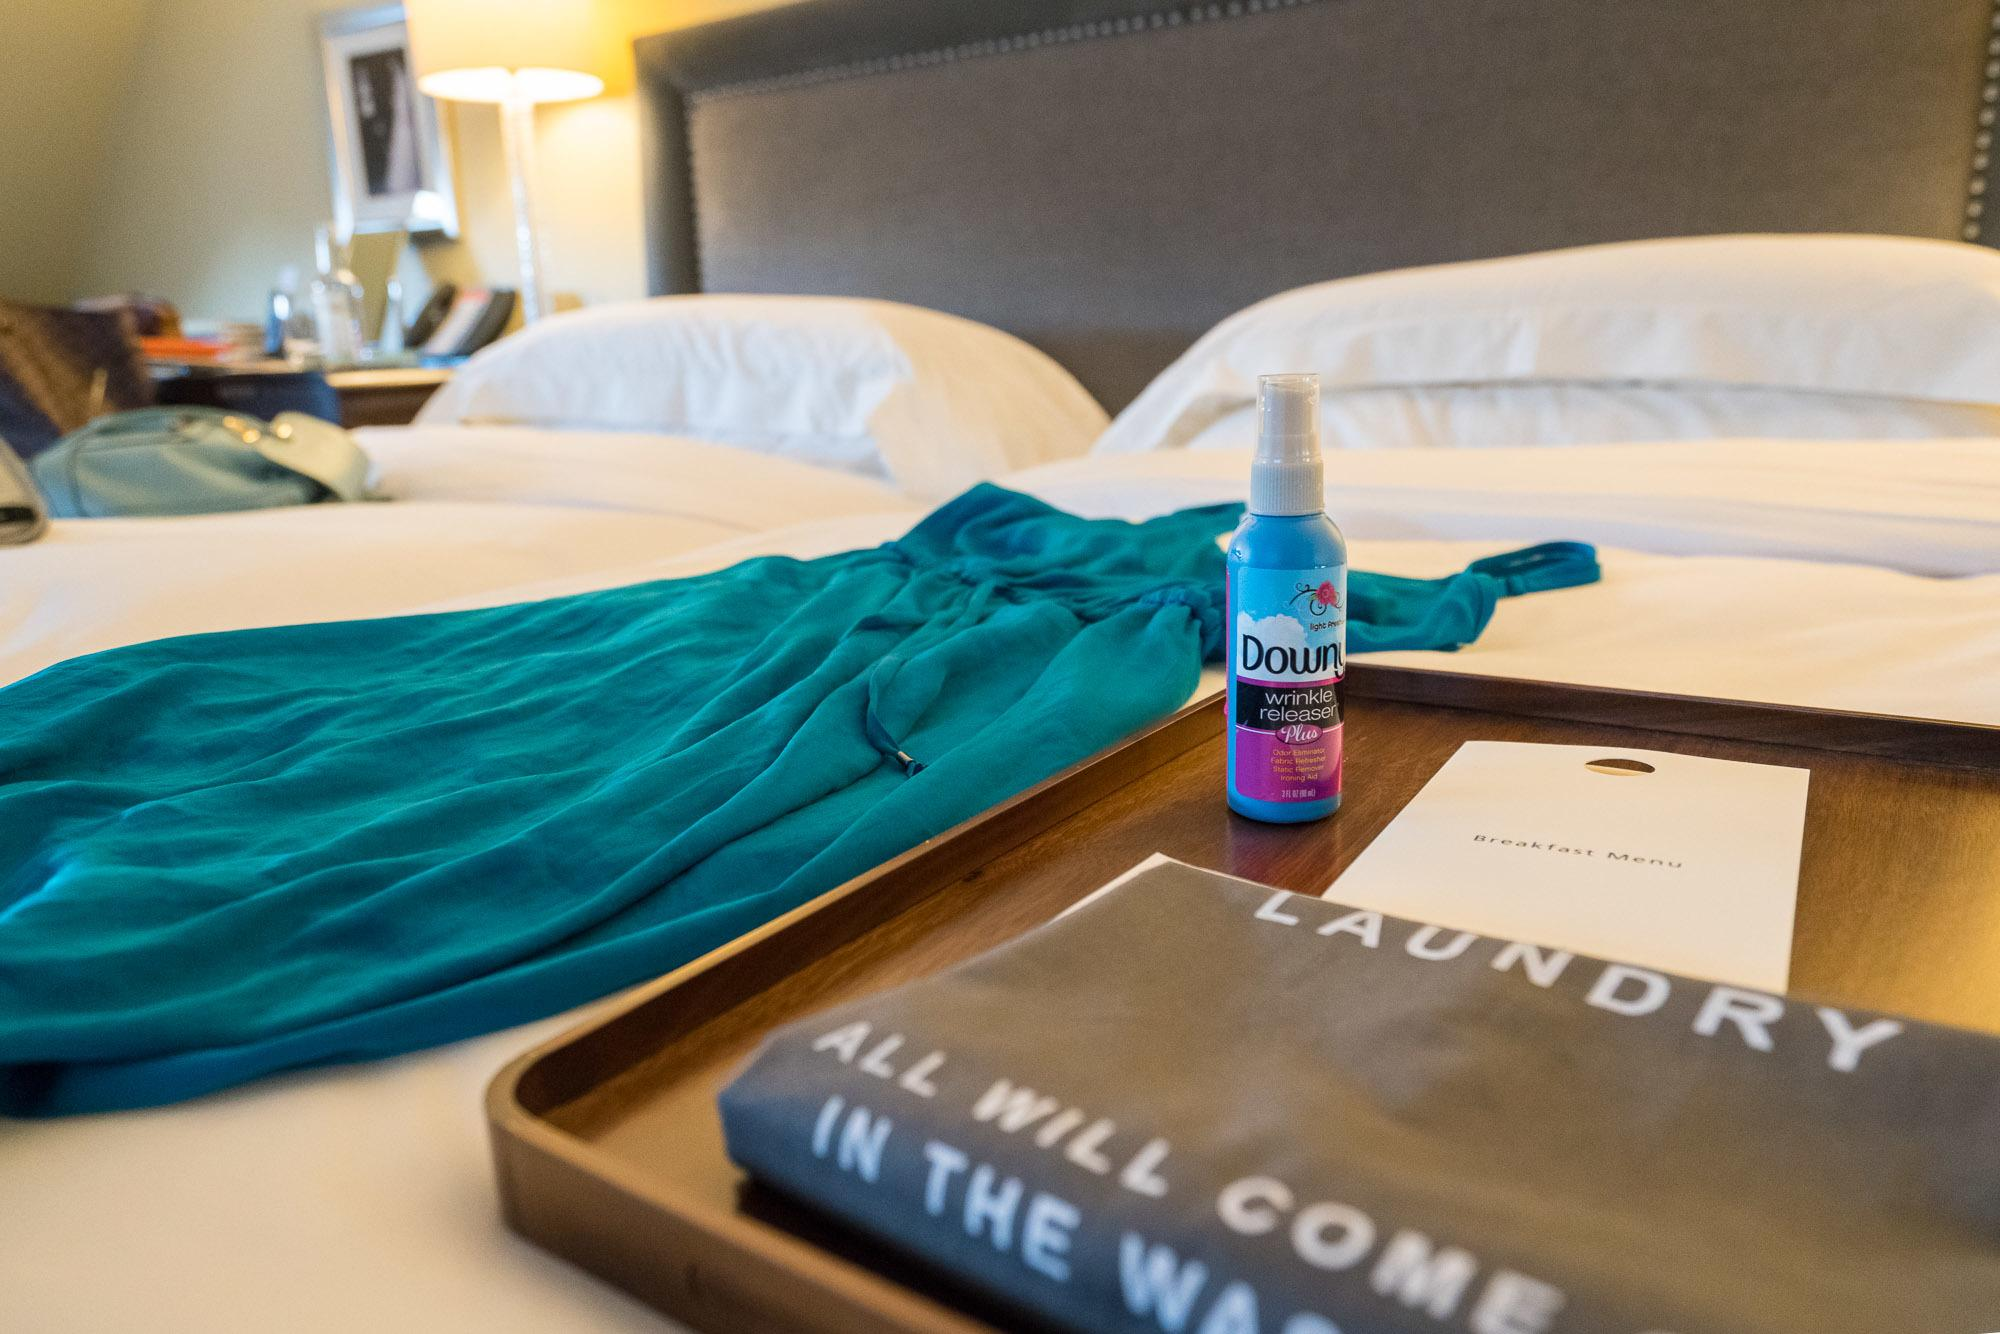 Downy Wrinkle Release is a must-have travel item.